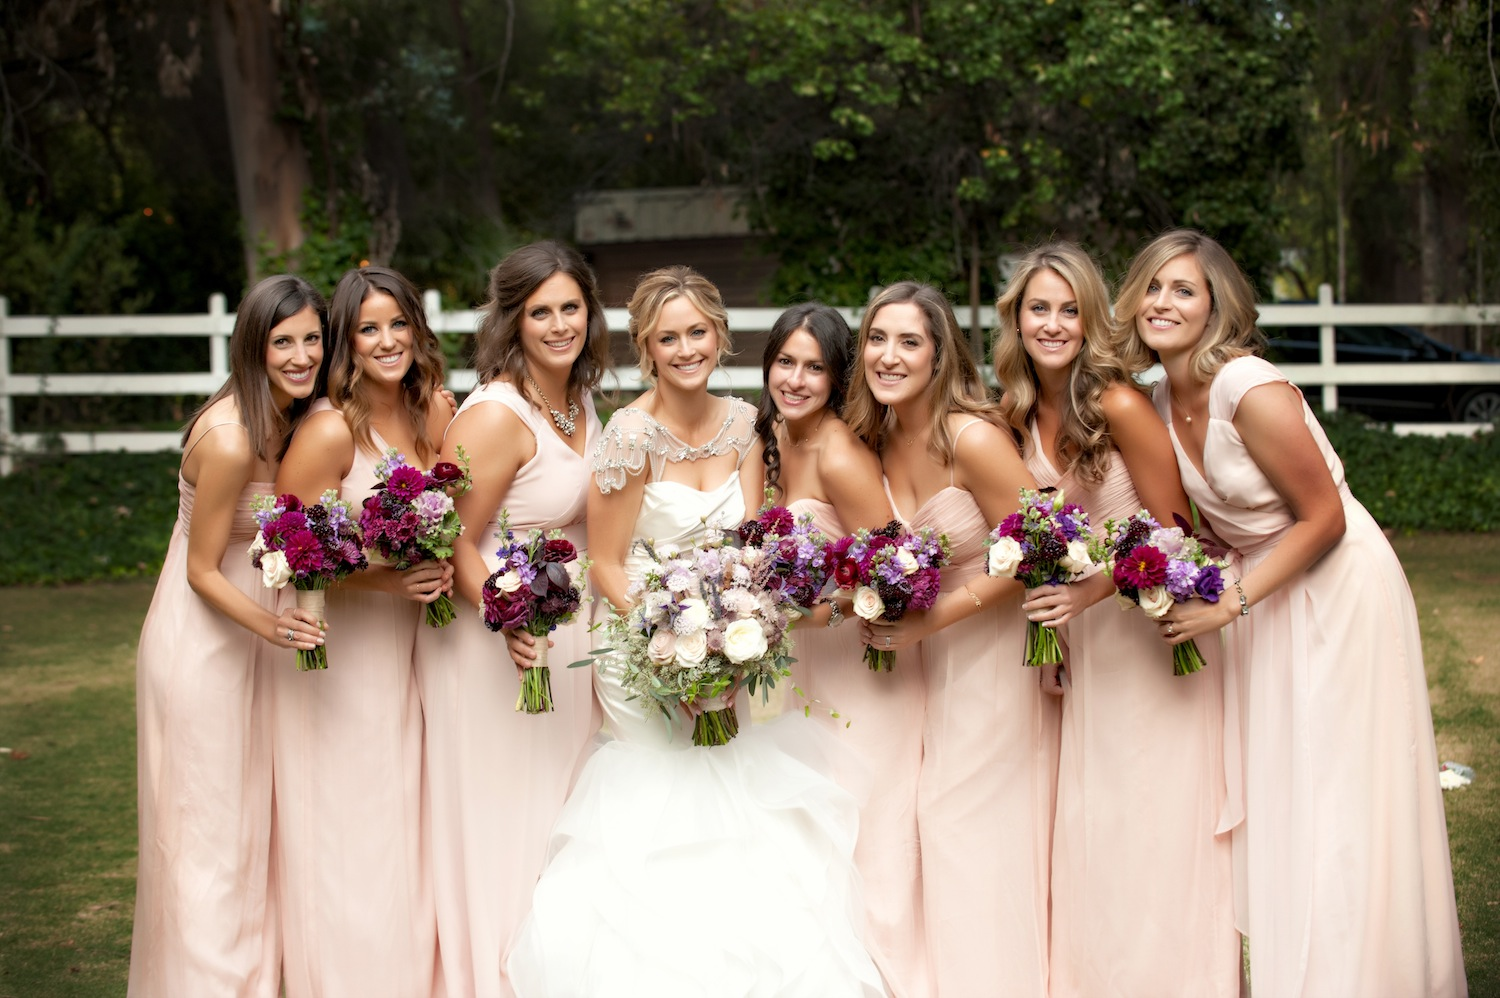 Bridesmaid Gifts What Not To Give Your Bridal Party Inside Weddings